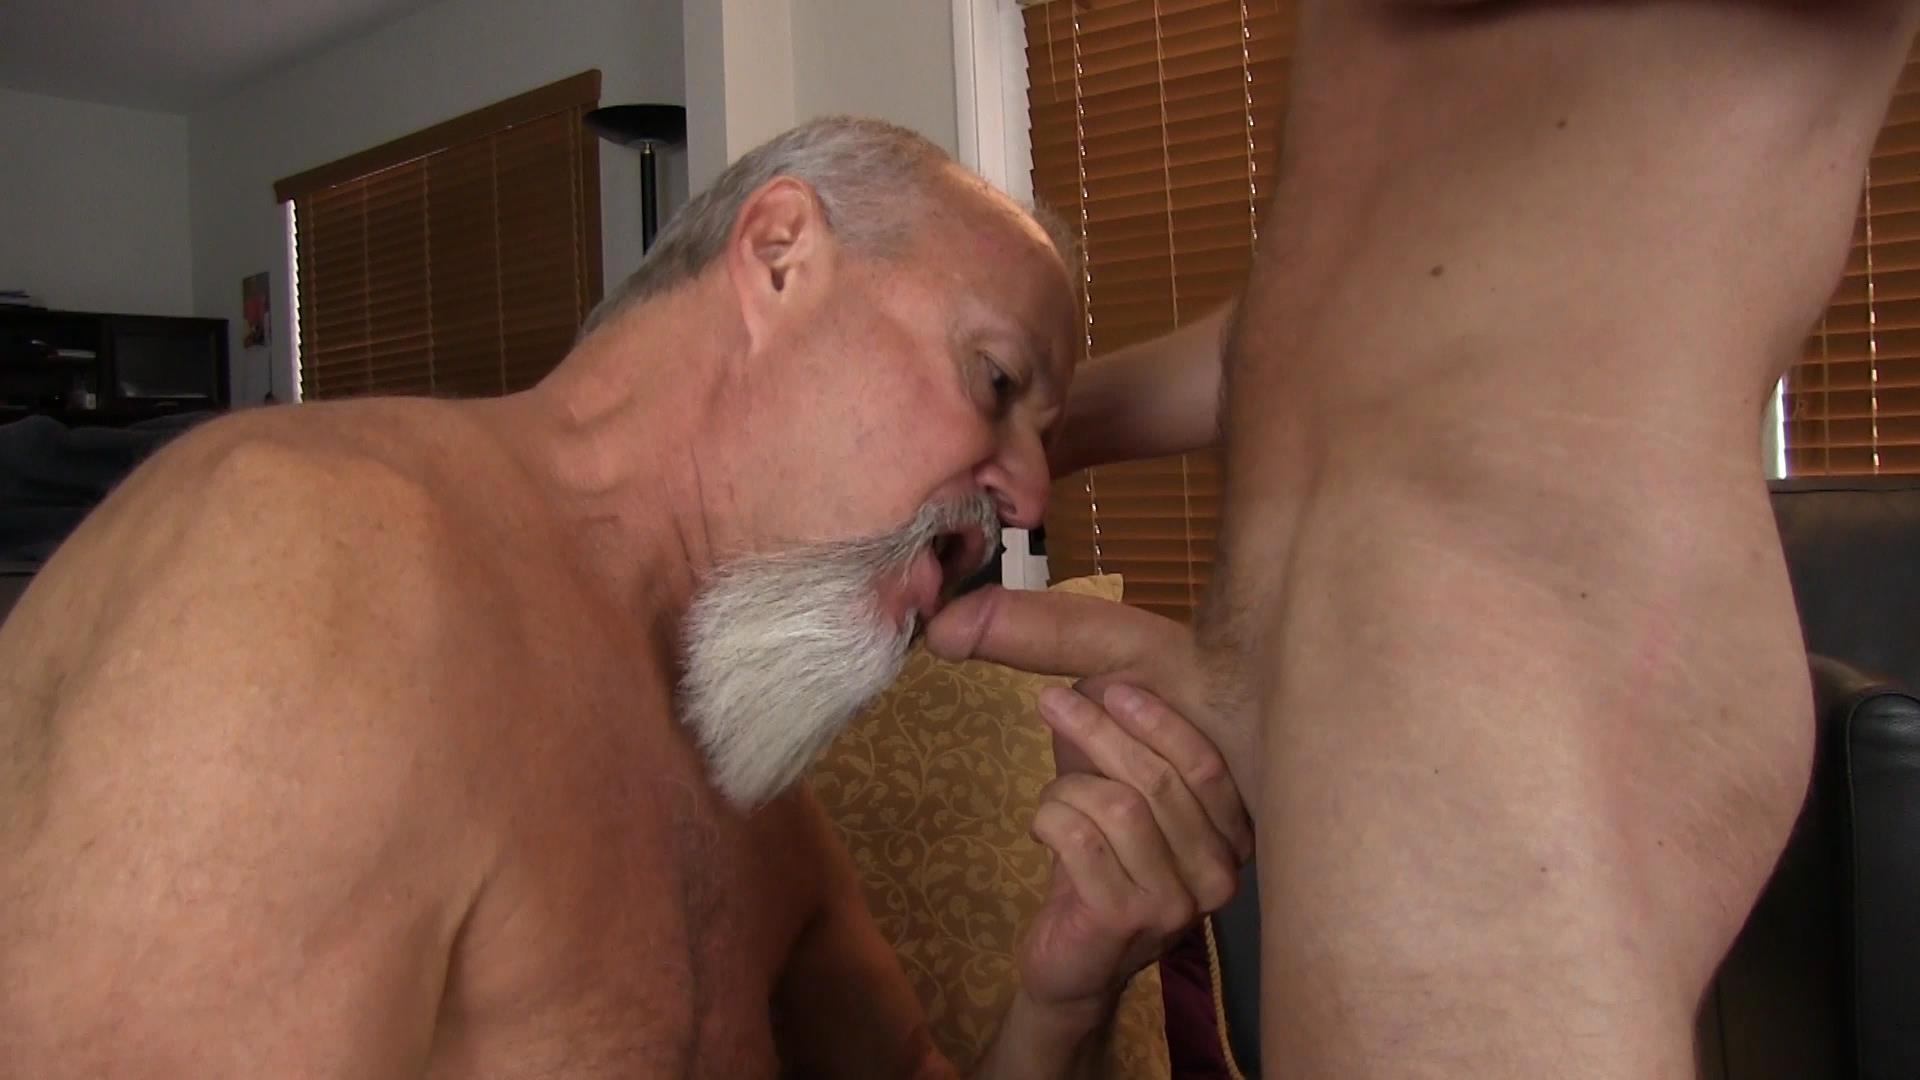 Bareback Me Daddy Silver Daddy Barebacks Younger Guy Amateur Gay Porn 03 Getting Barebacked By A Thick Daddy Dick